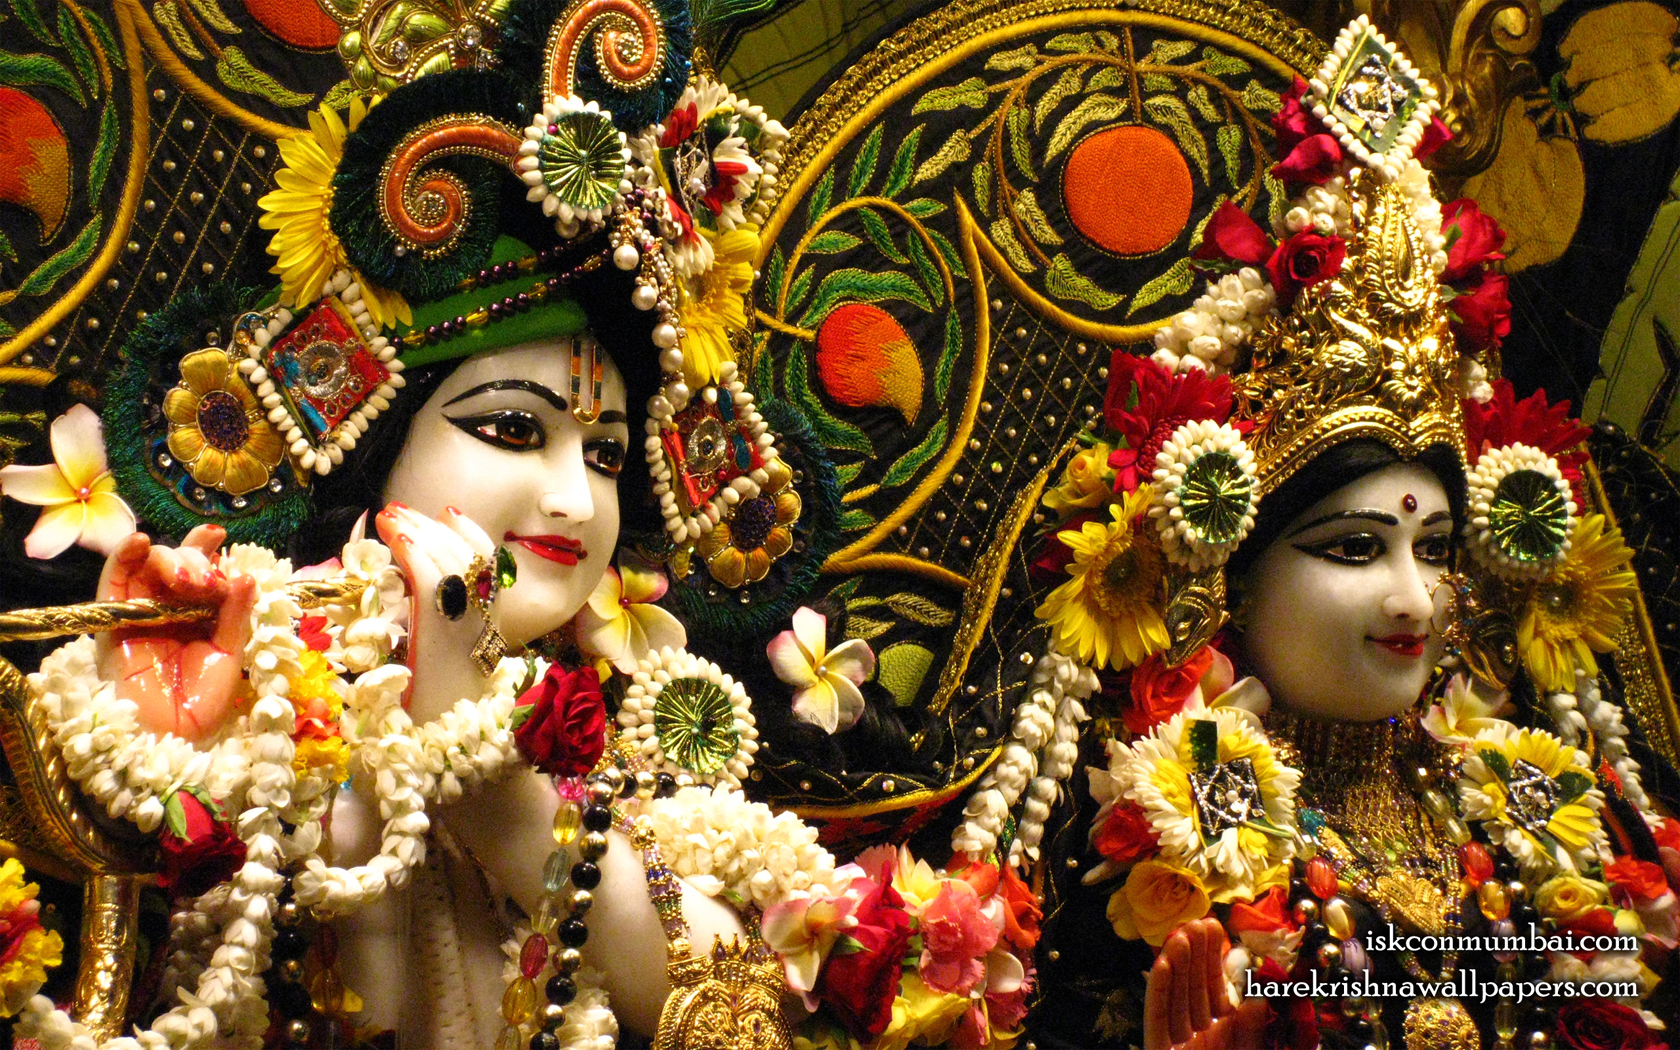 Sri Sri Radha Rasabihari Close up Wallpaper (030) Size 1680x1050 Download